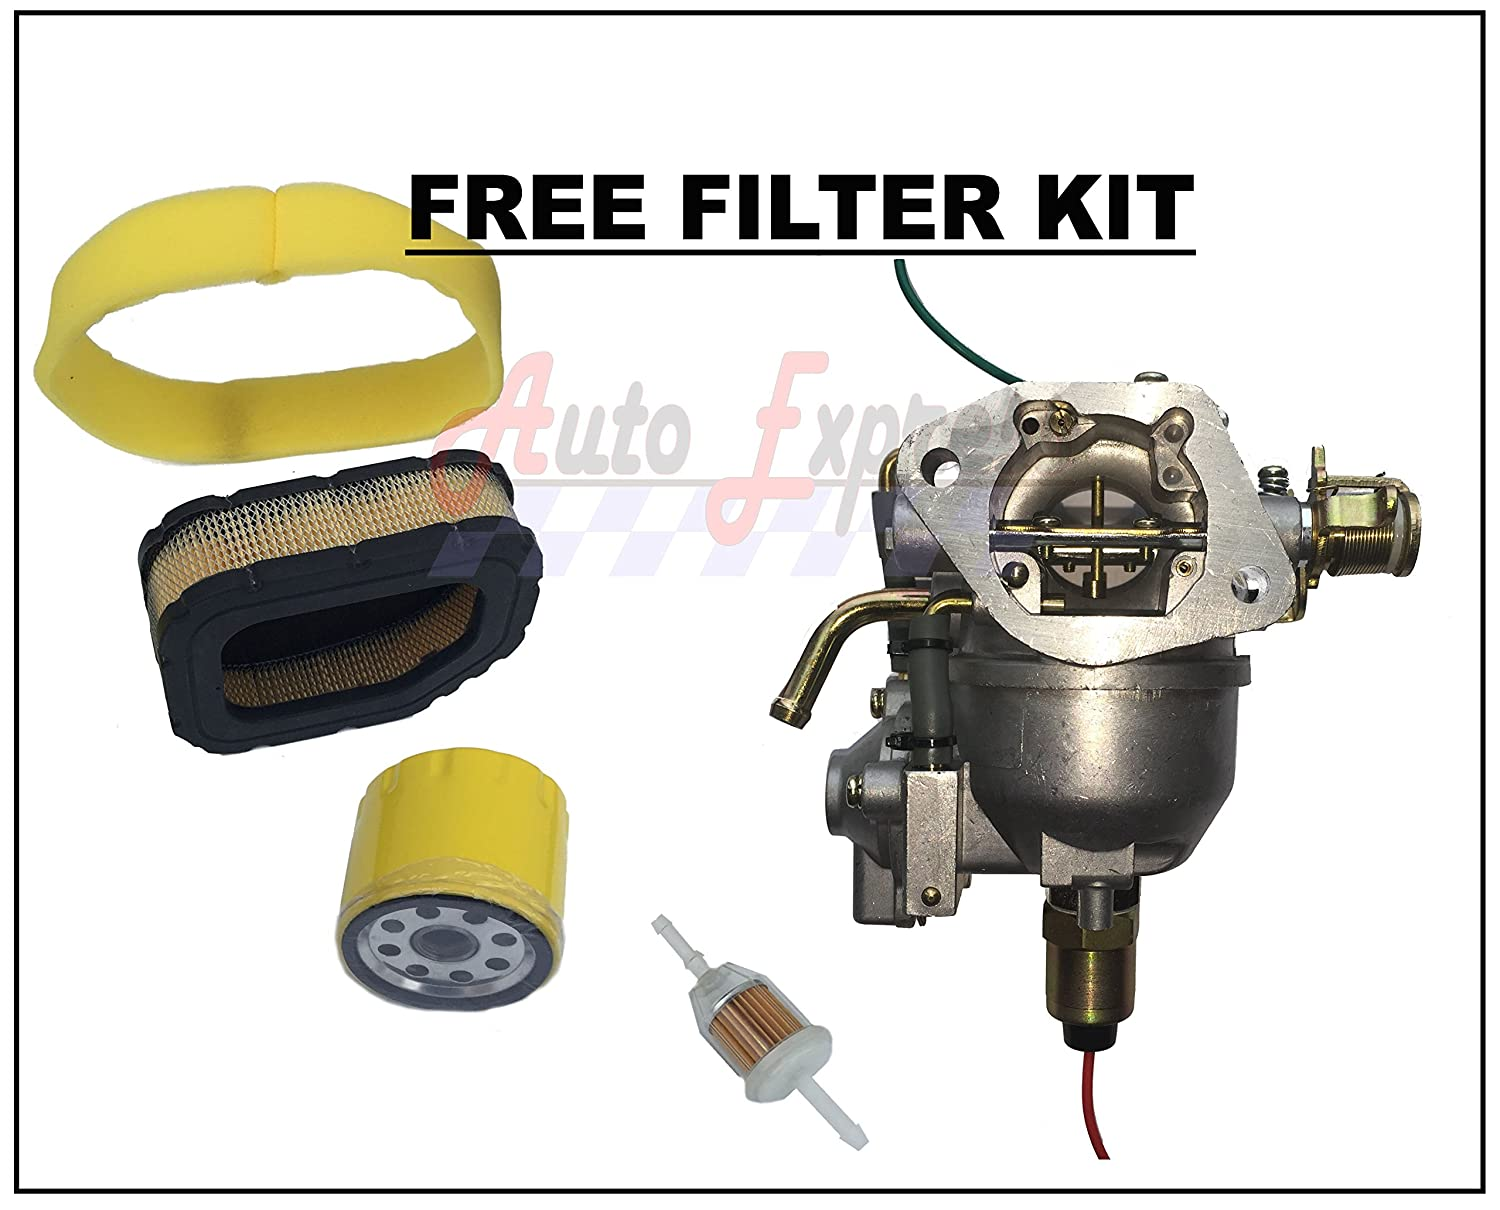 81WCl4RjBsL._SL1500_ amazon com carburetor fits john deere m655 m665 ztrak carb pump john deere m655 parts diagram at gsmx.co